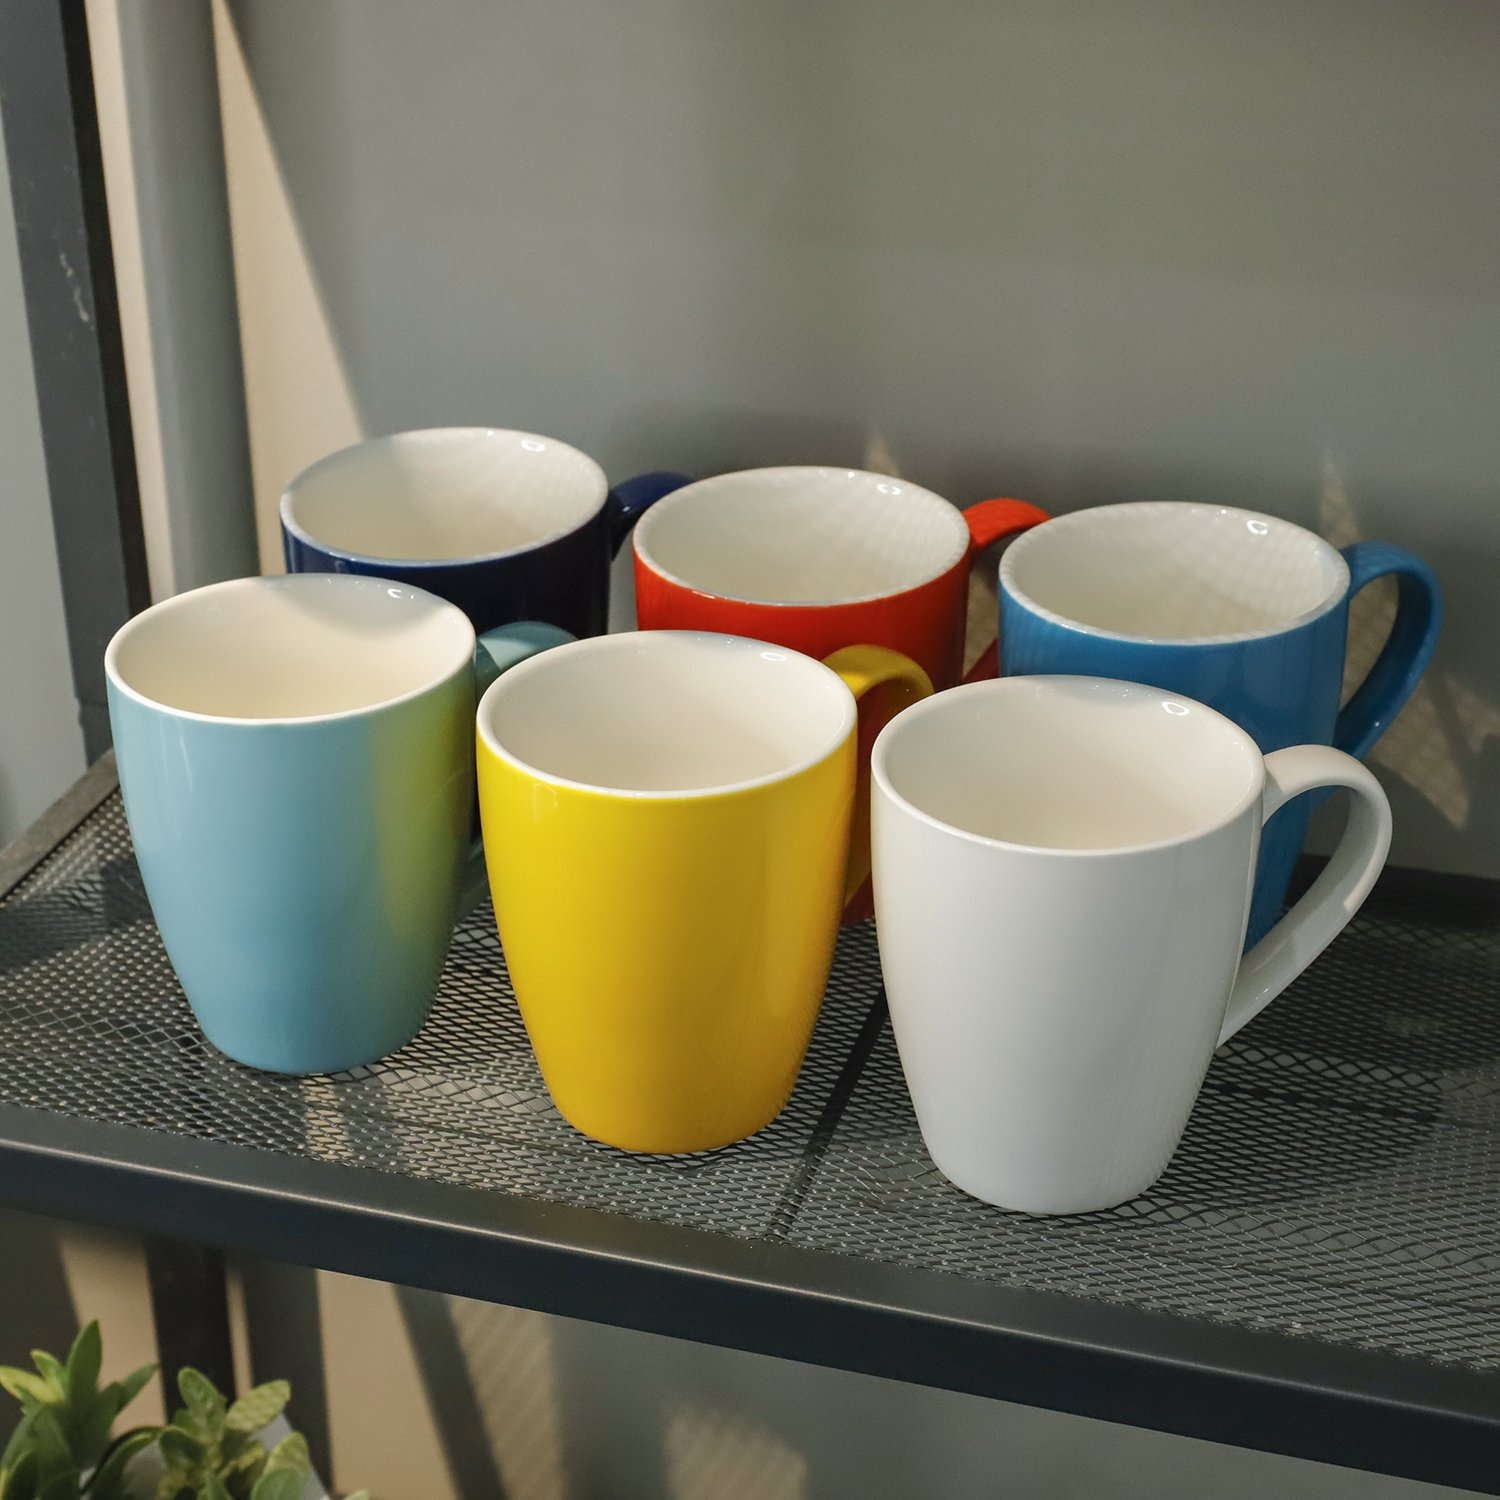 Sweese 6202 Porcelain Mugs - 16 Ounce for Coffee, Tea, Cocoa, Set of 6, Hot Assorted Colors by Sweese (Image #5)